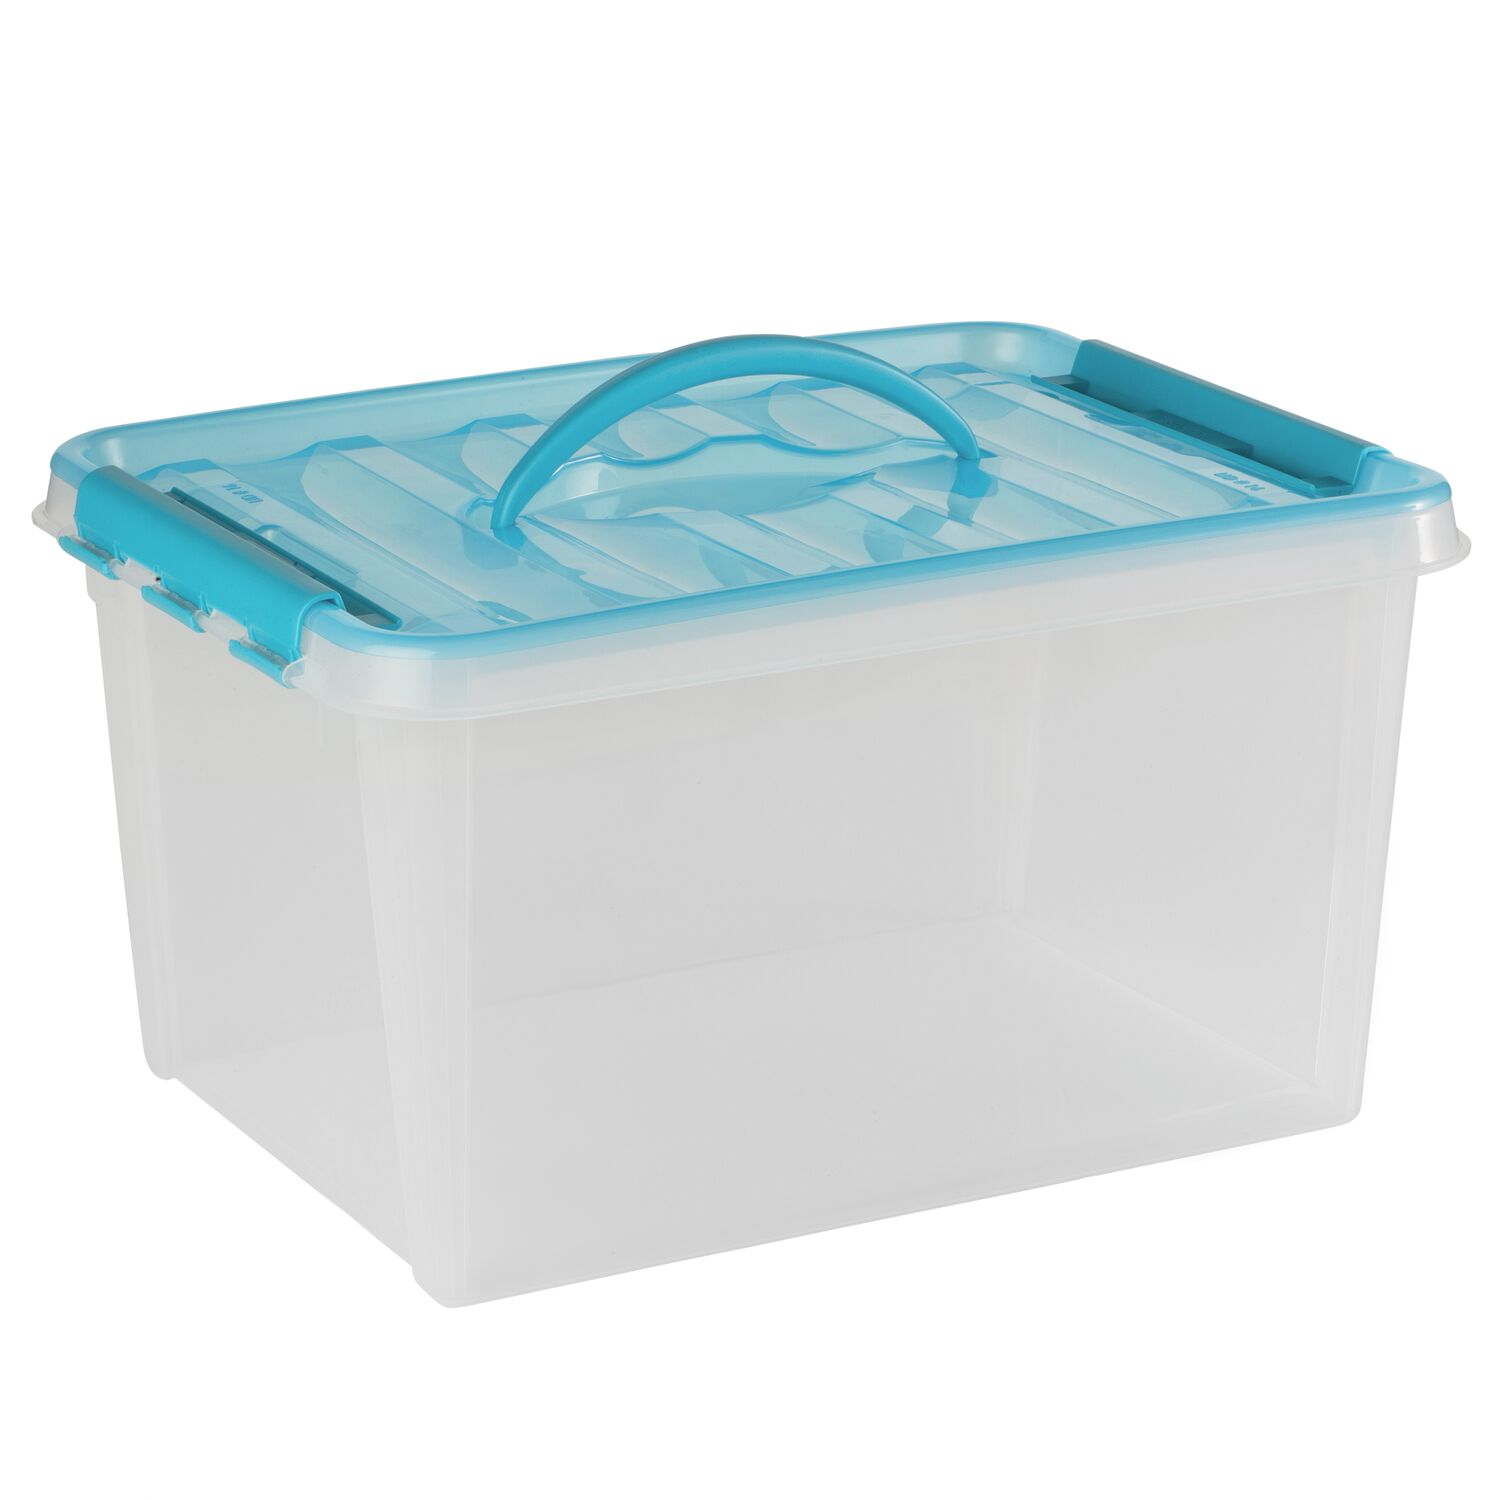 Snapware Smart Store 16 inches X 9 inches Home Storage Container Turquoise Handles